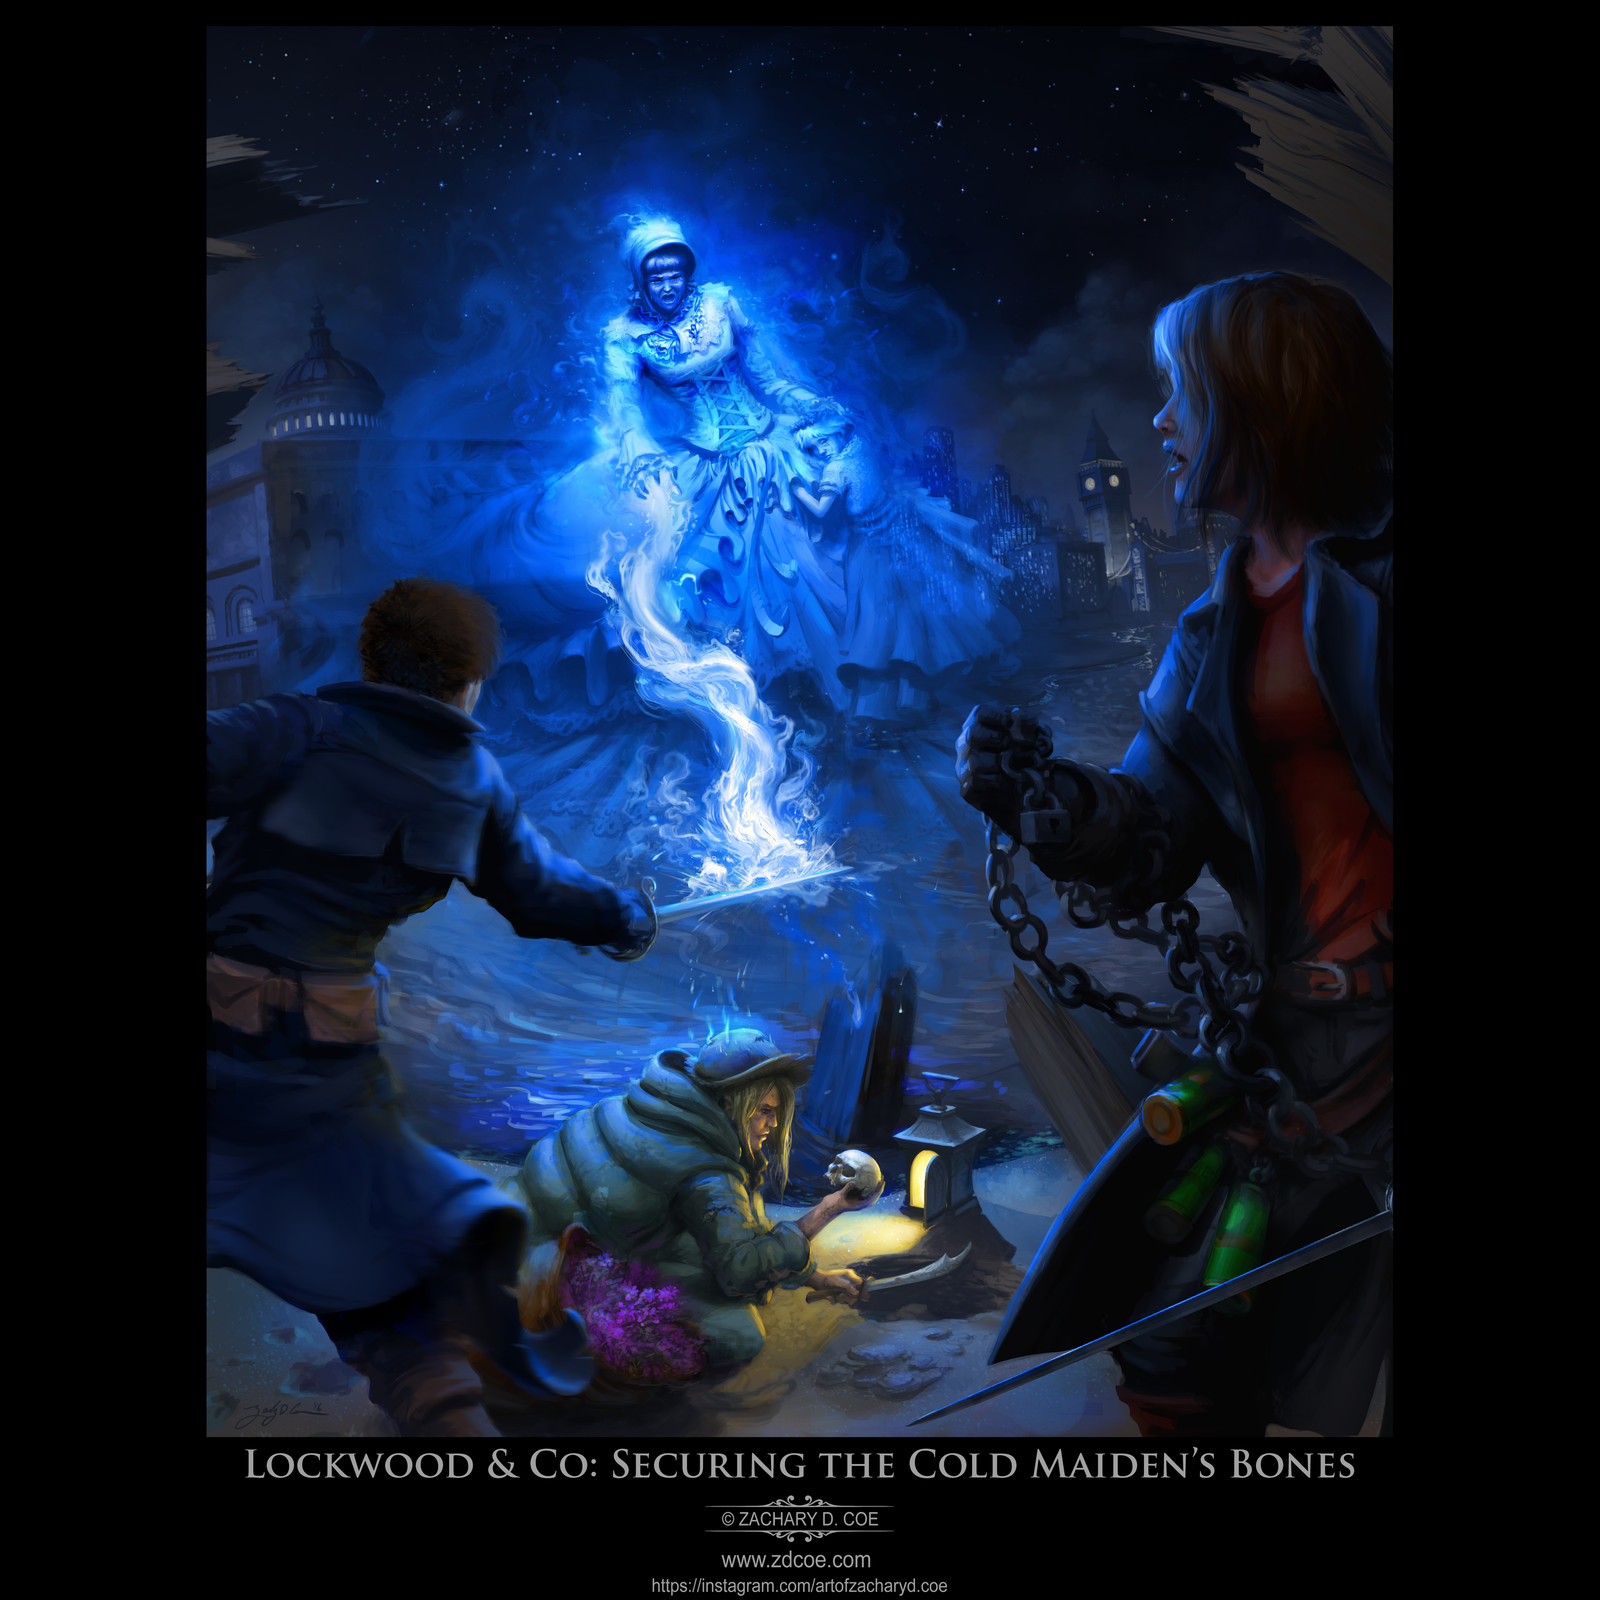 LOCKWOOD & CO: SECURING THE COLD MAIDEN'S BONES by Zachary D. Coe